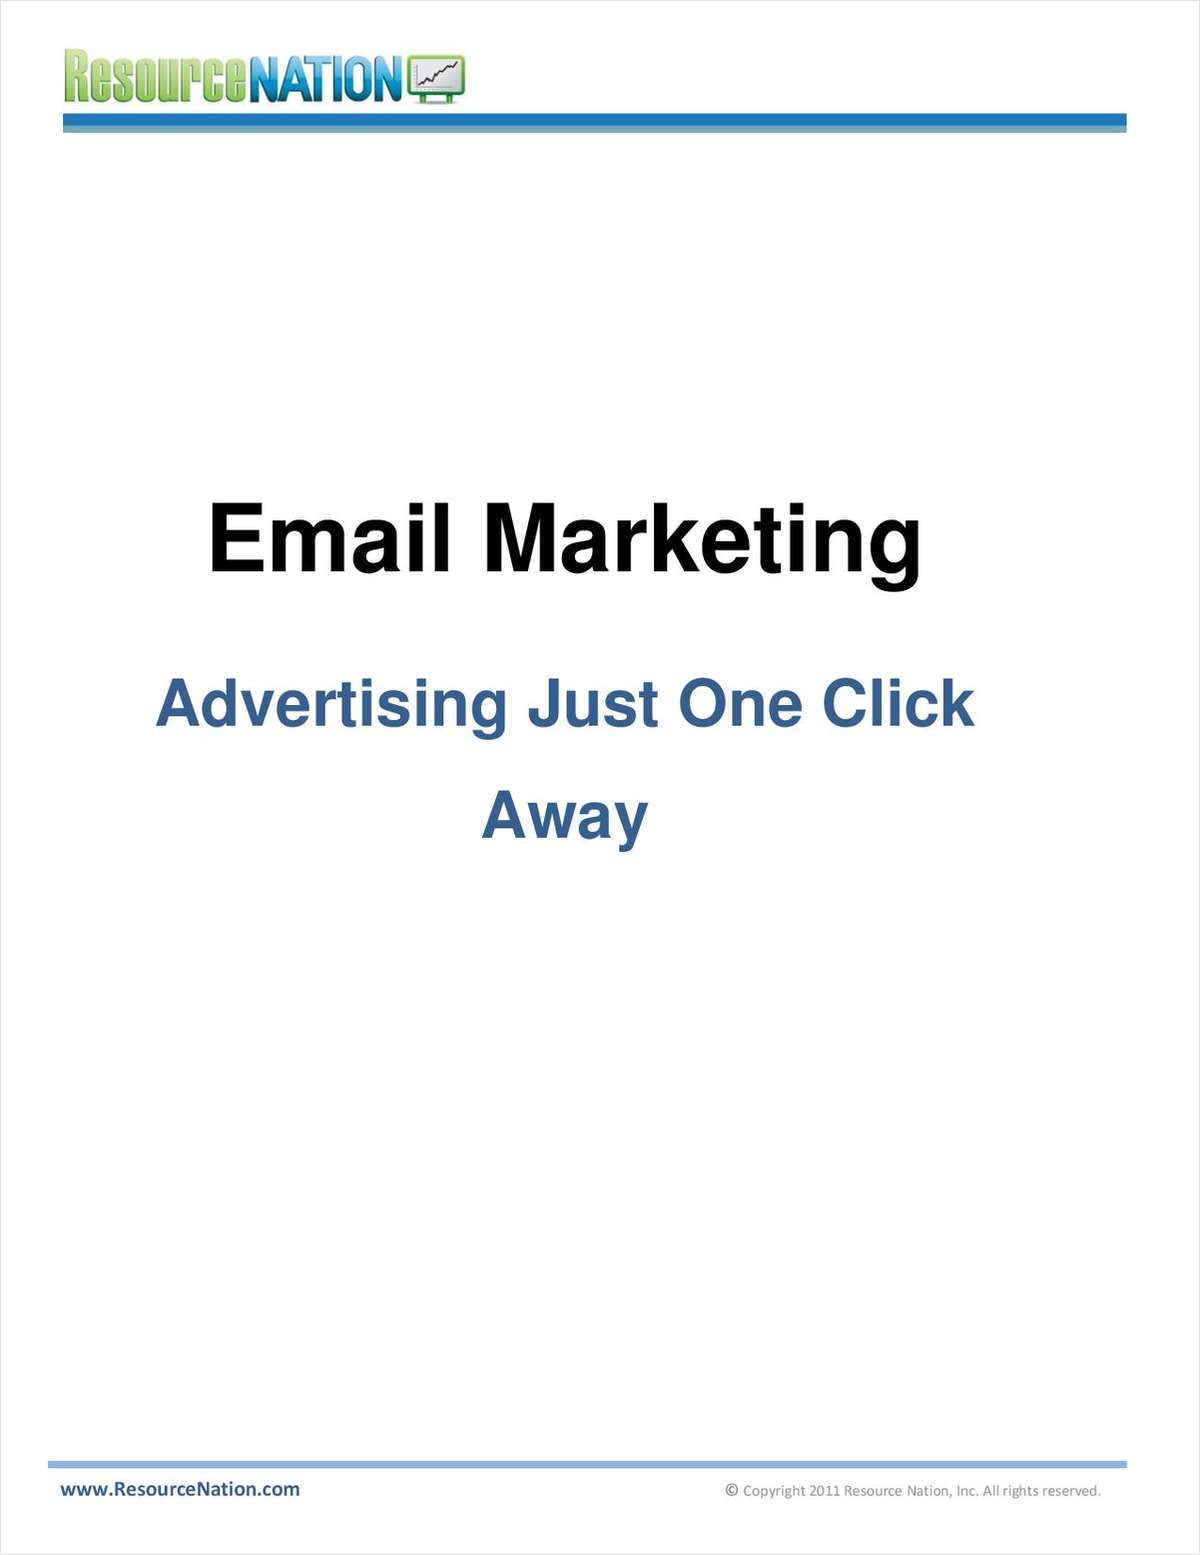 Harnessing the Power of Email Marketing to Grow Your Business